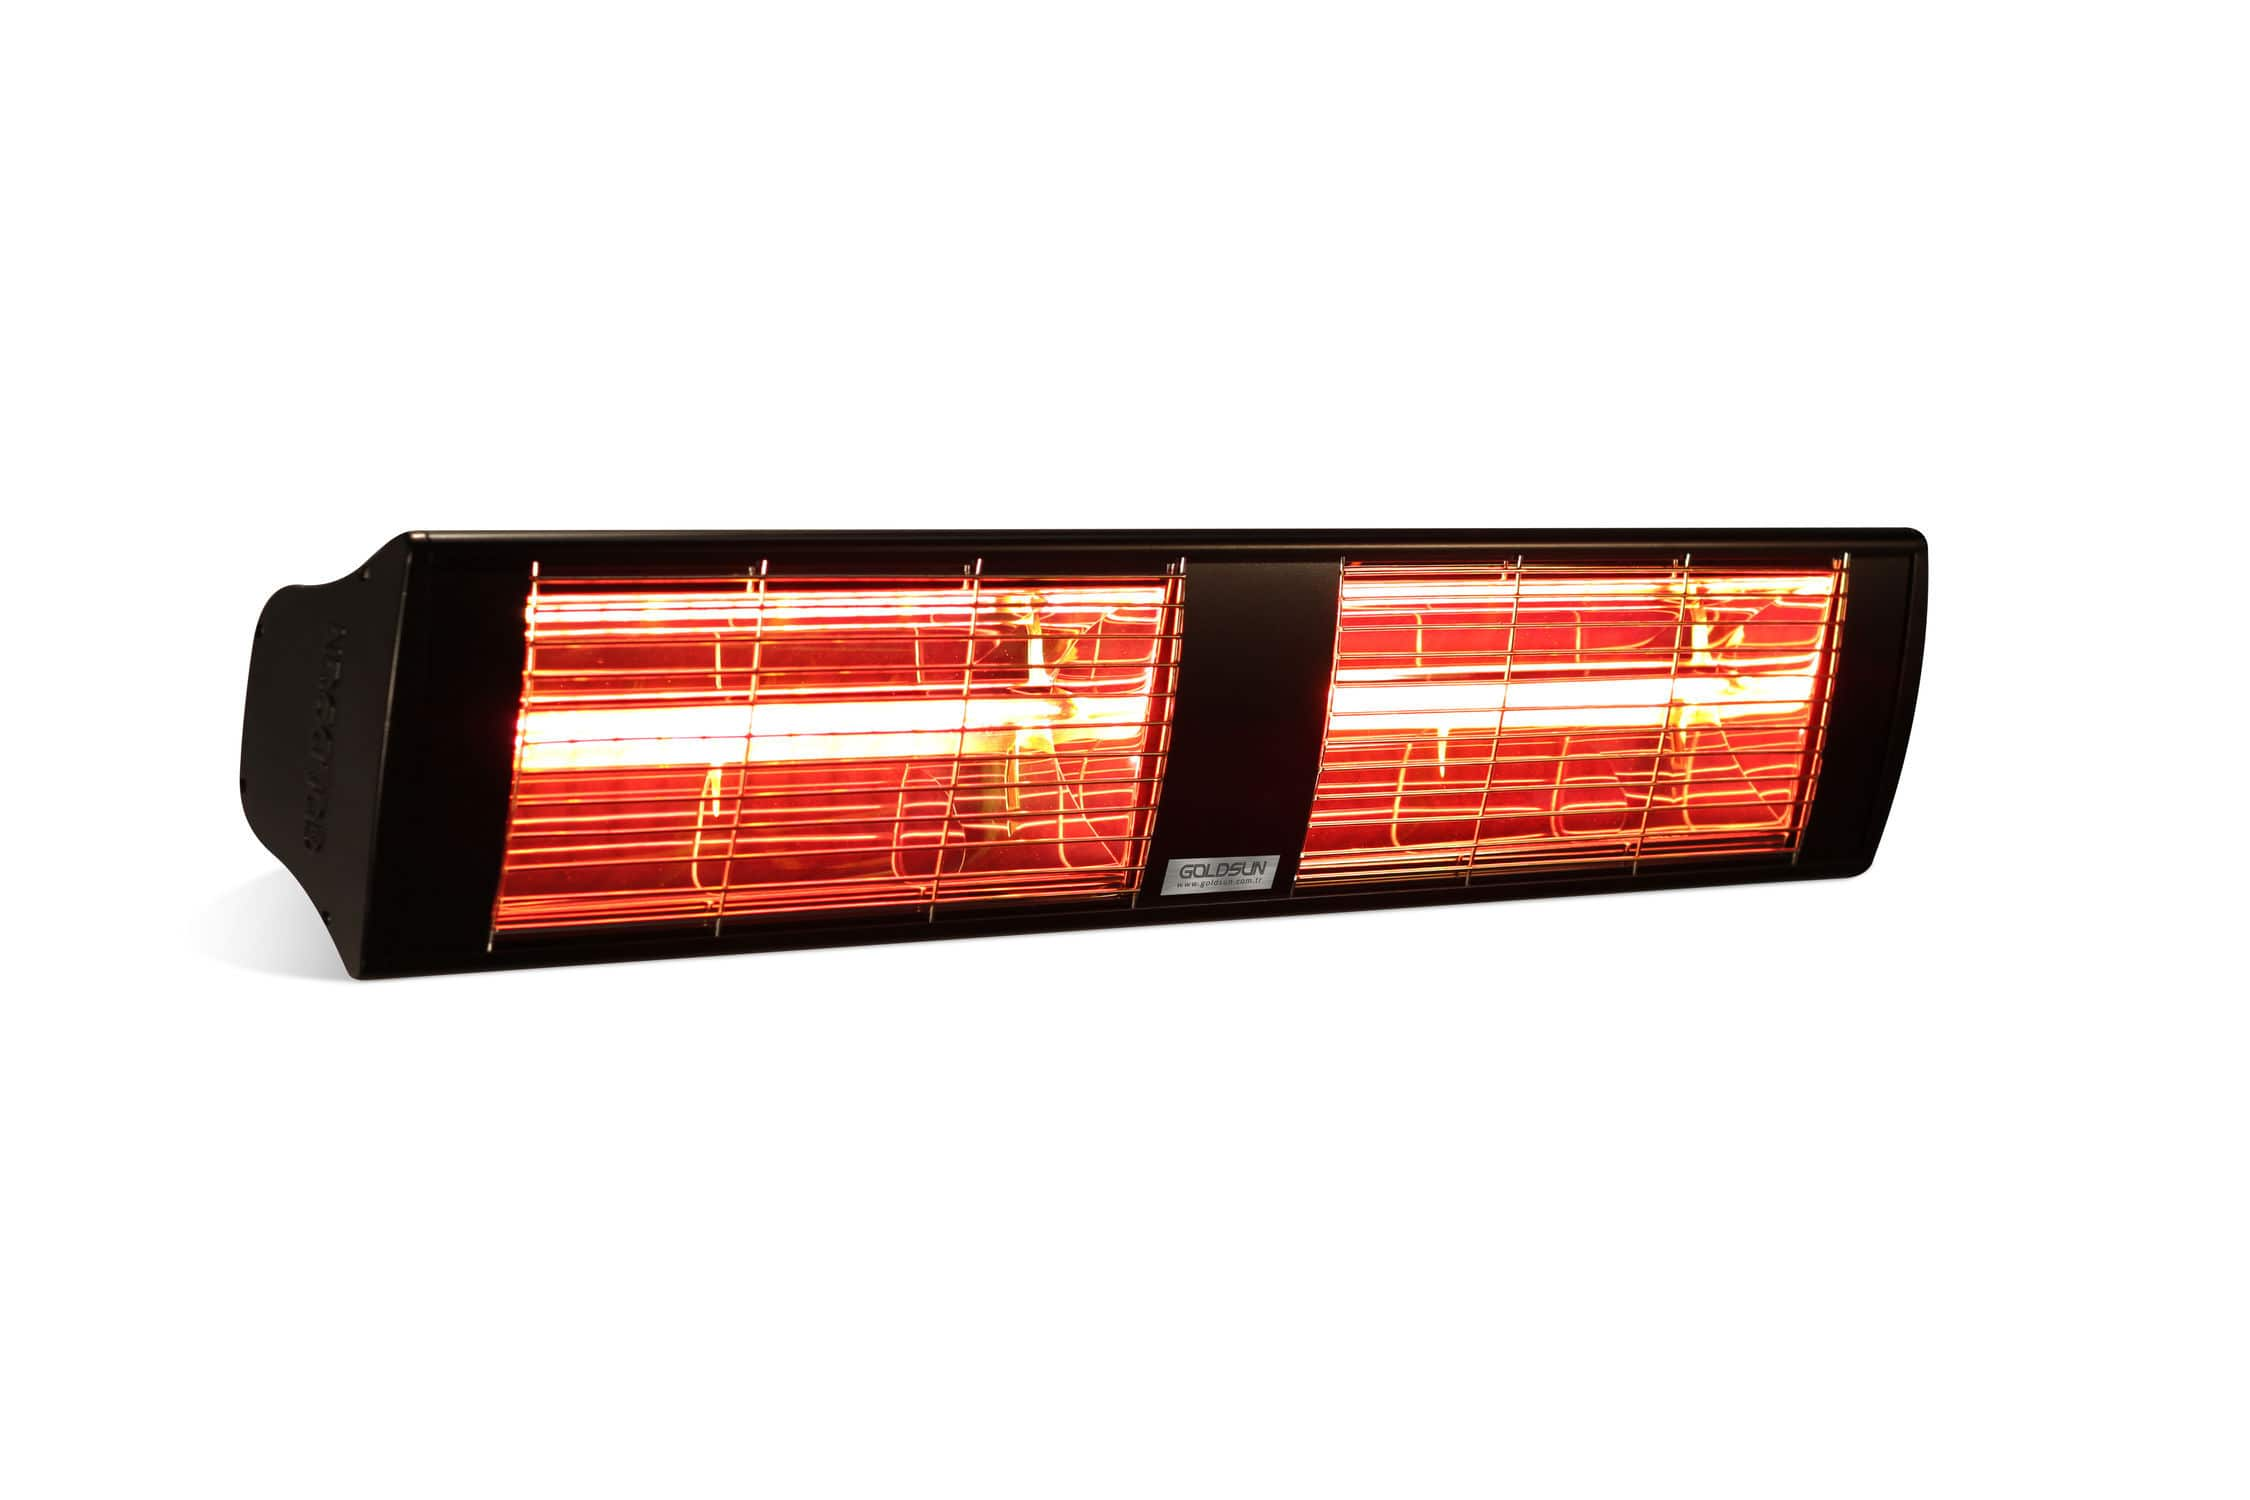 Superieur ... Wall Mounted Infrared Patio Heater / Electric ...